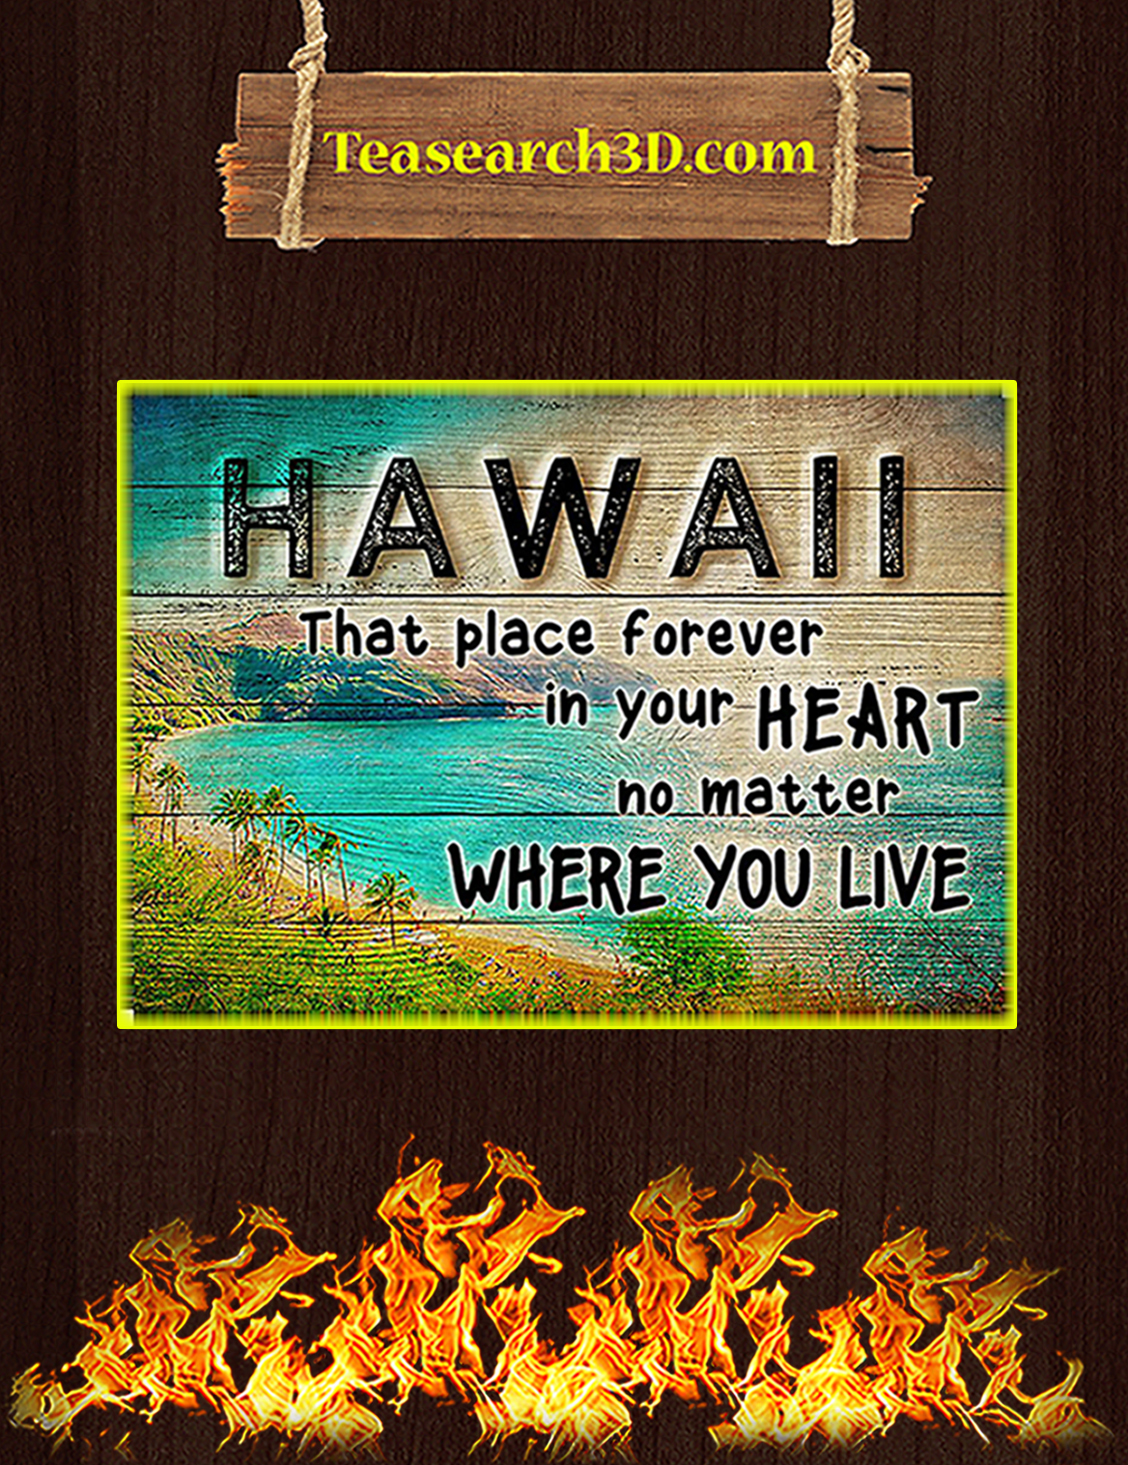 Hawaii that place forever in your heart poster A3